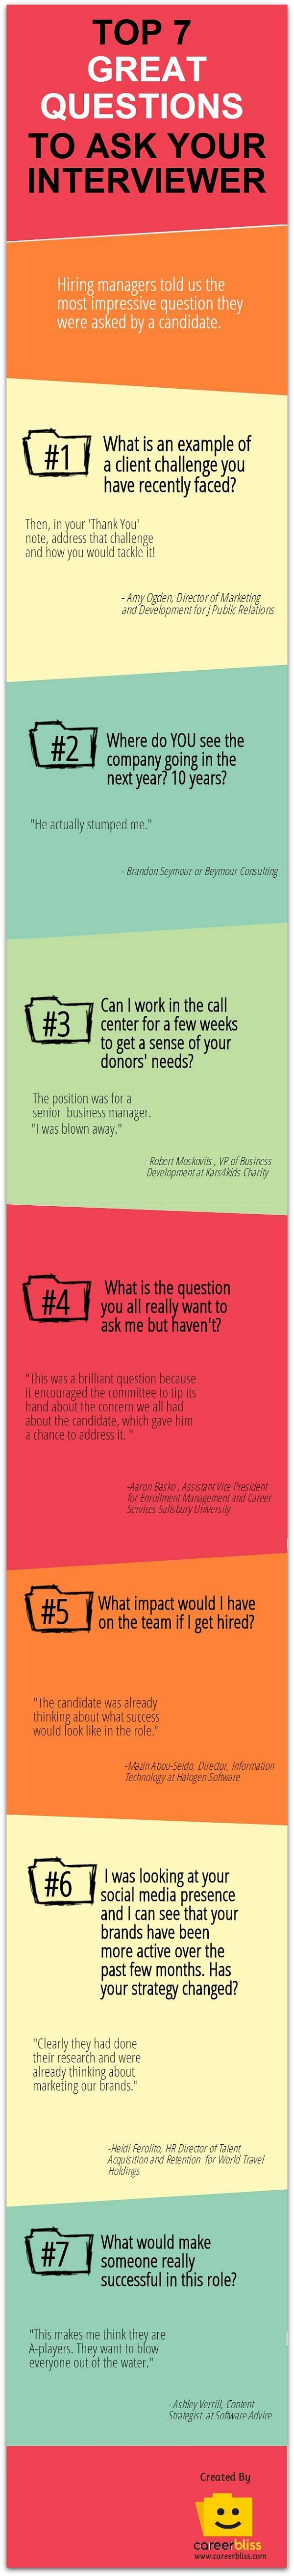 best images about jobs and branding interview infographic 7 impressive questions to ask in a job interview